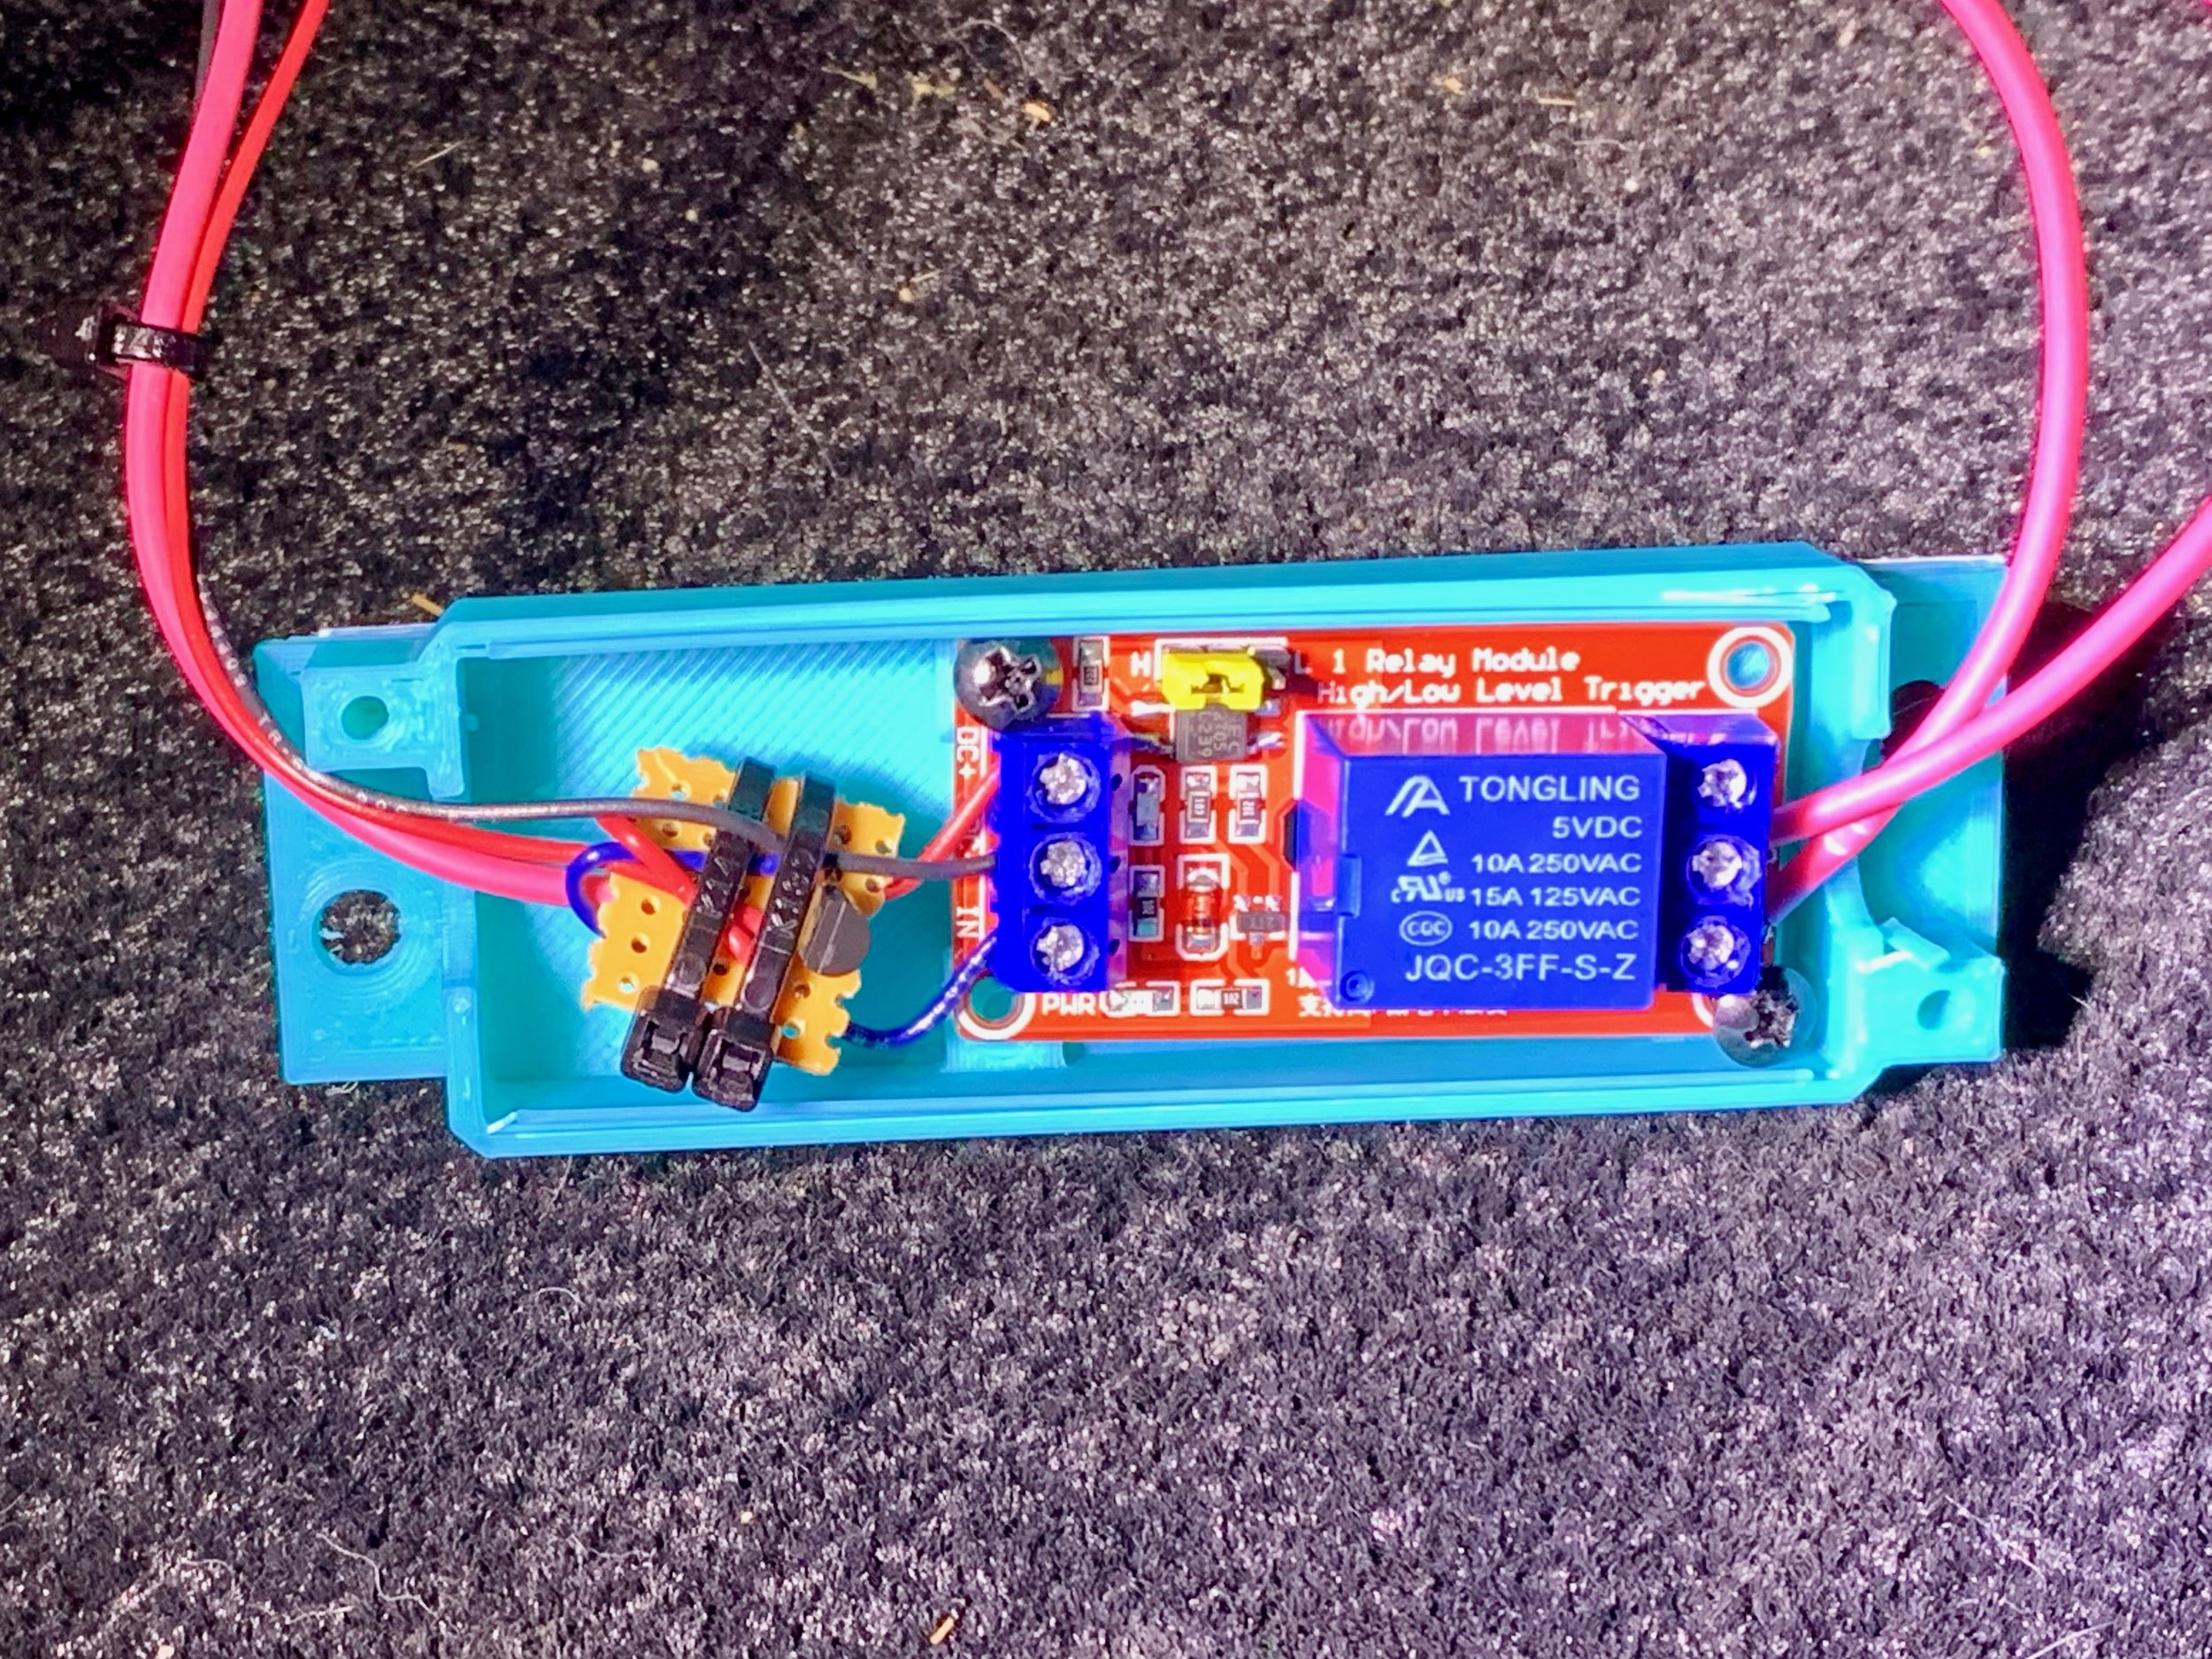 The relay board screwed into the case. The transistor board just floats freely inside.